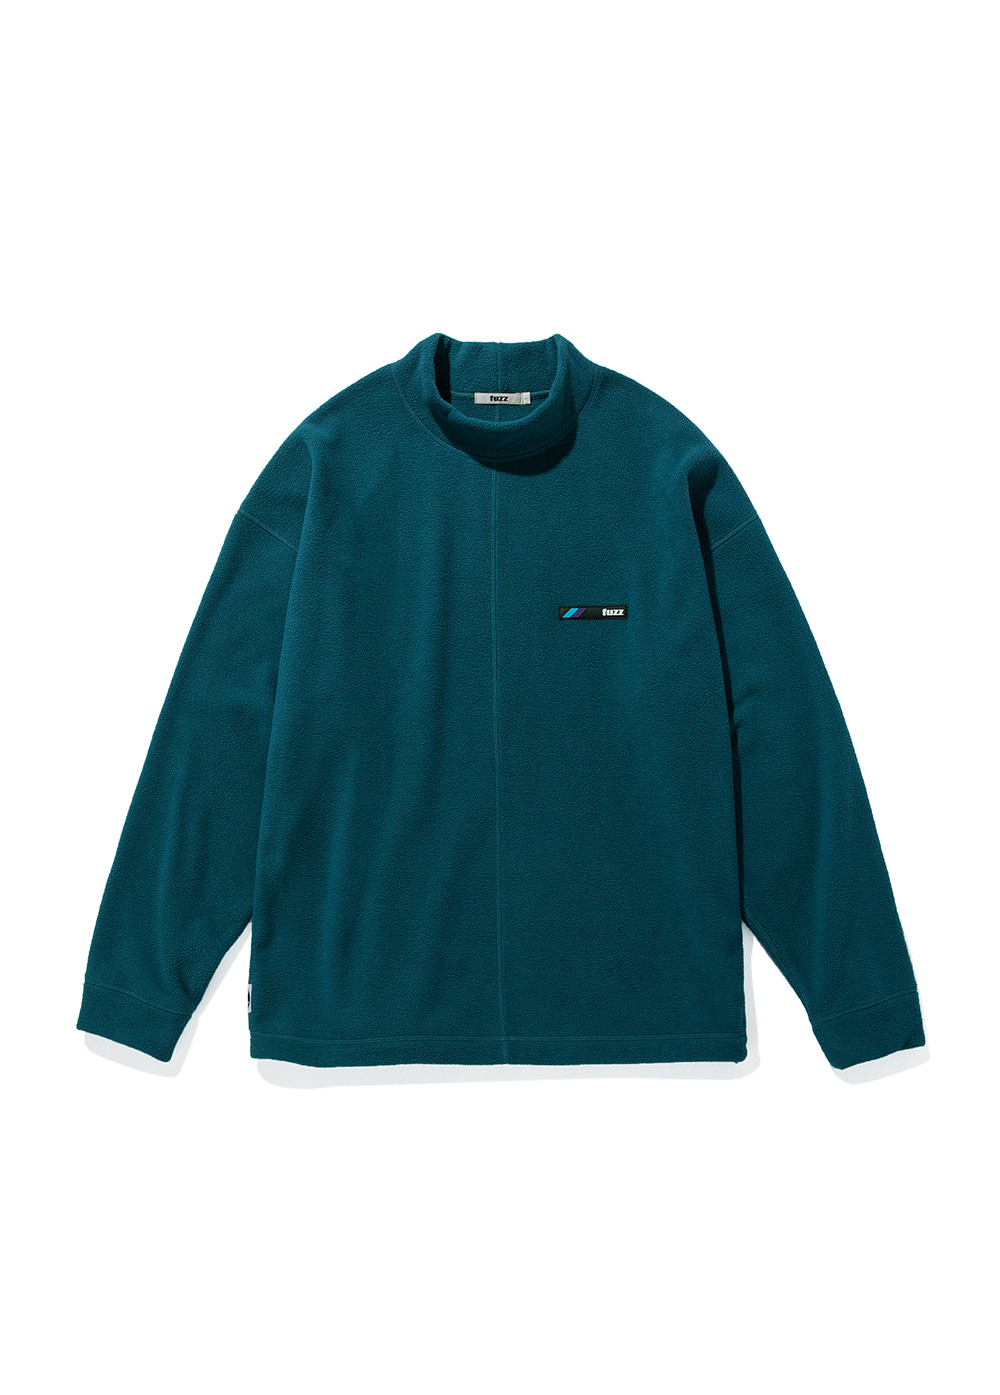 FUZZ FLEECE MOCKNECK L/S dark teal